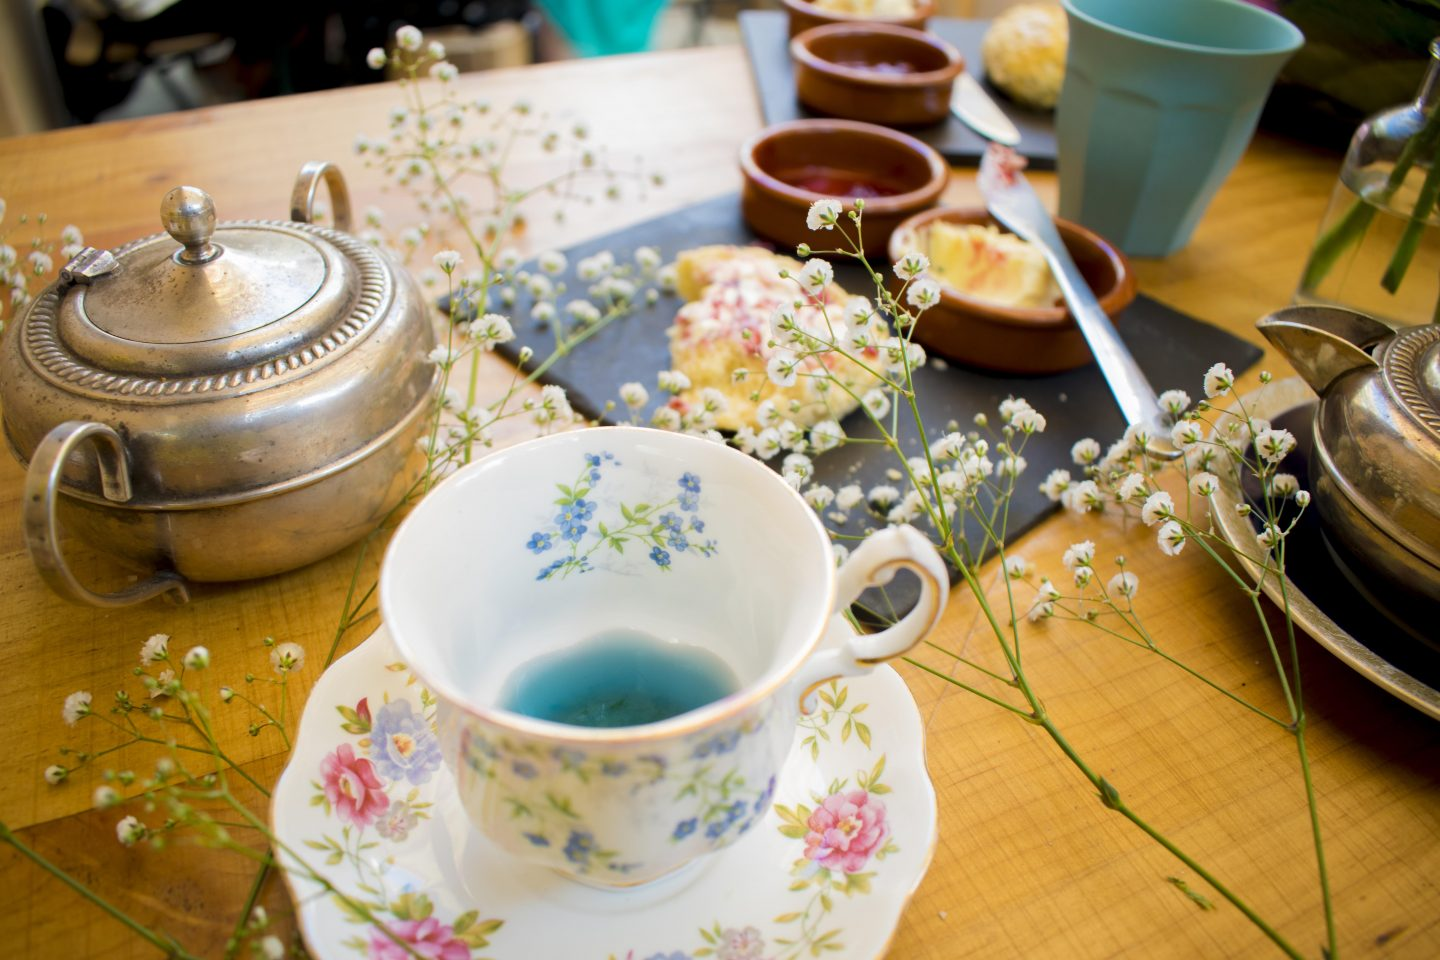 Oshinity Afternoon Tea Nook cafe